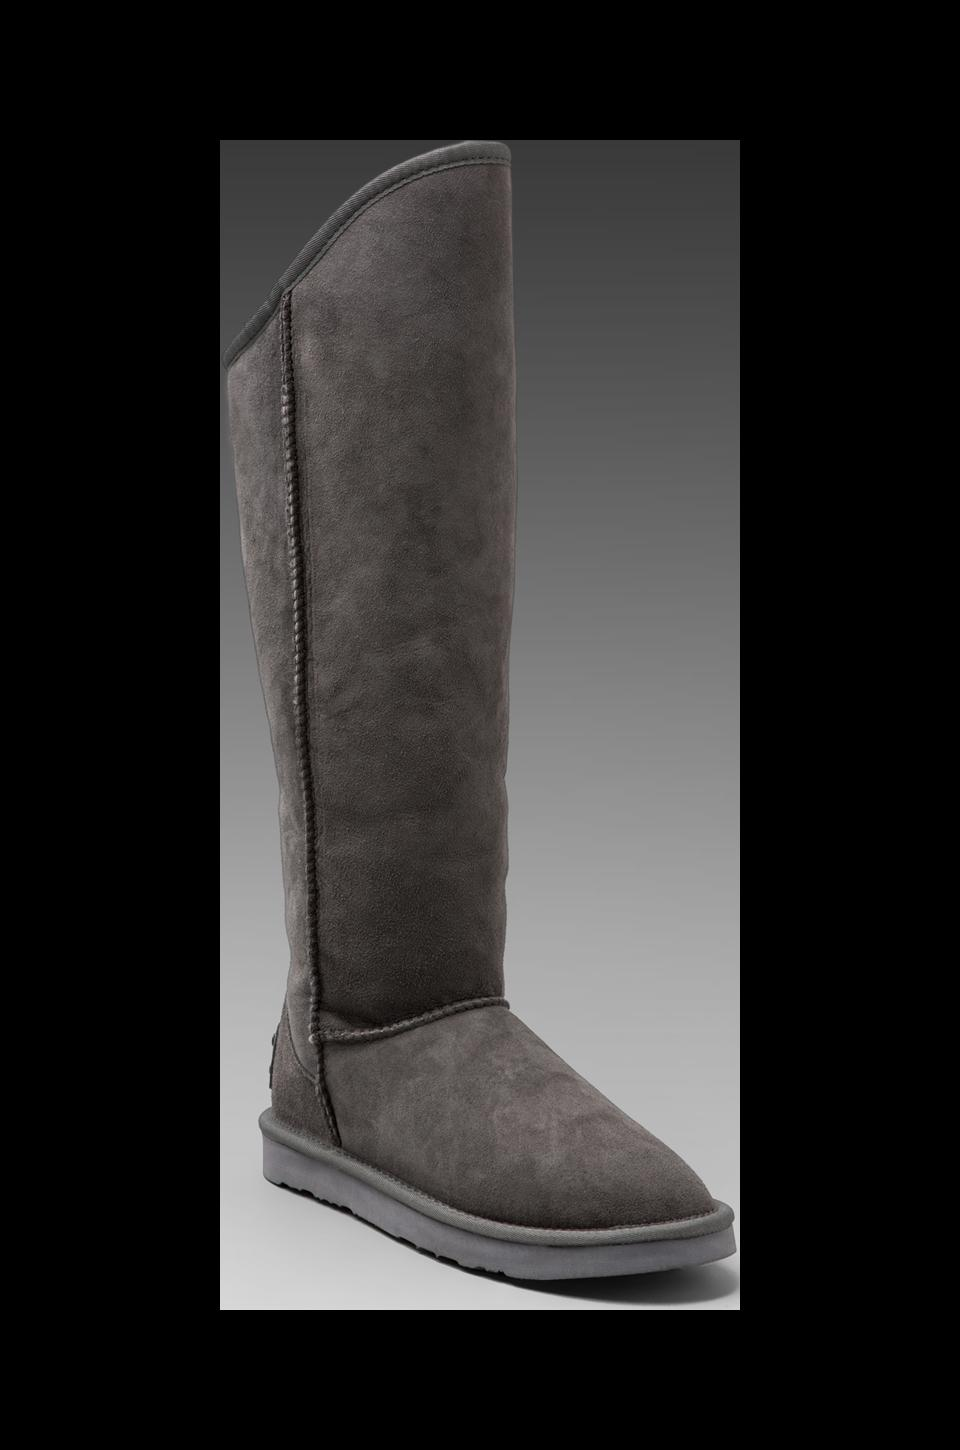 Australia Luxe Collective Cosy Extra Tall with Sheep Shearling in Grey